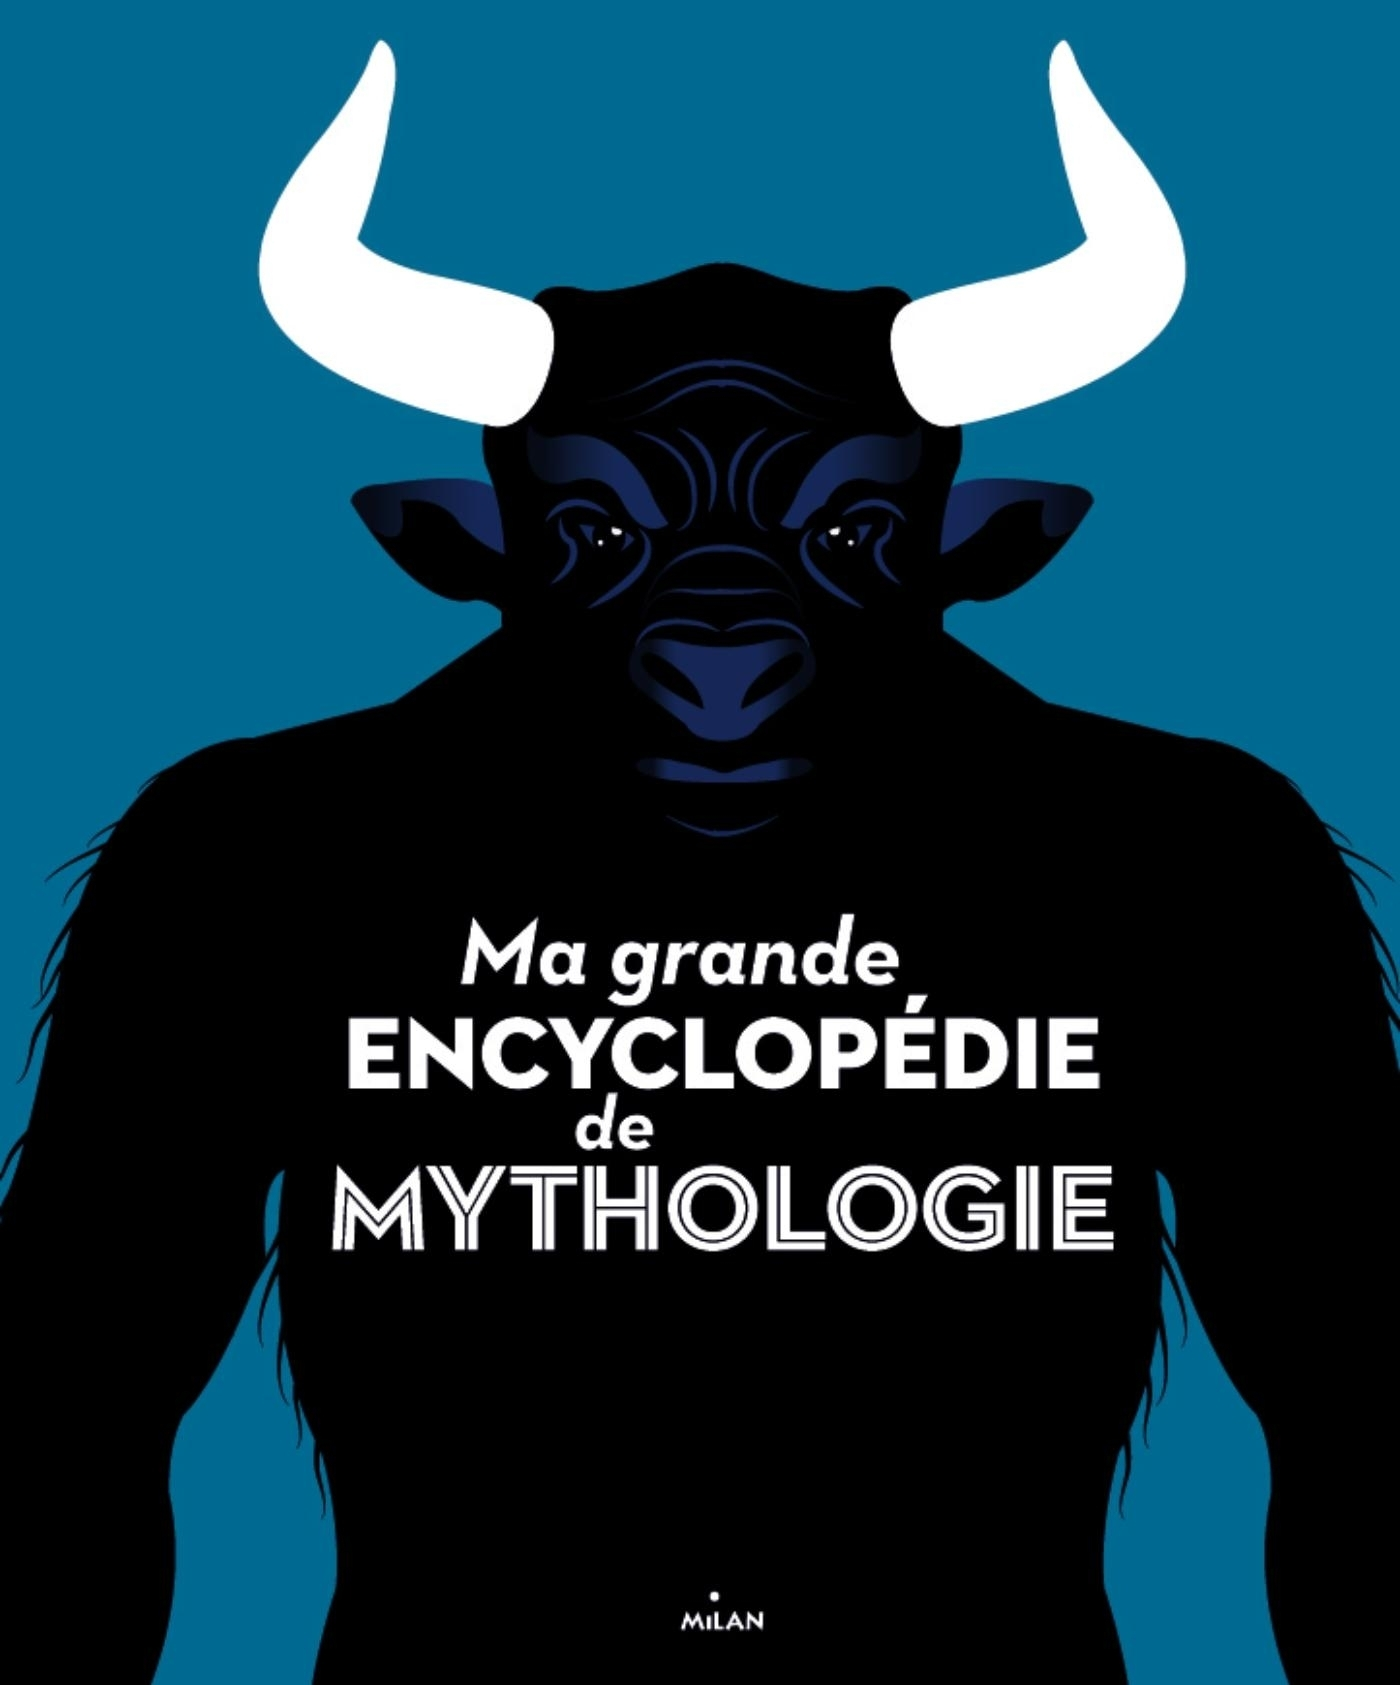 MA GRANDE ENCYCLOPEDIE DE MYTHOLOGIE